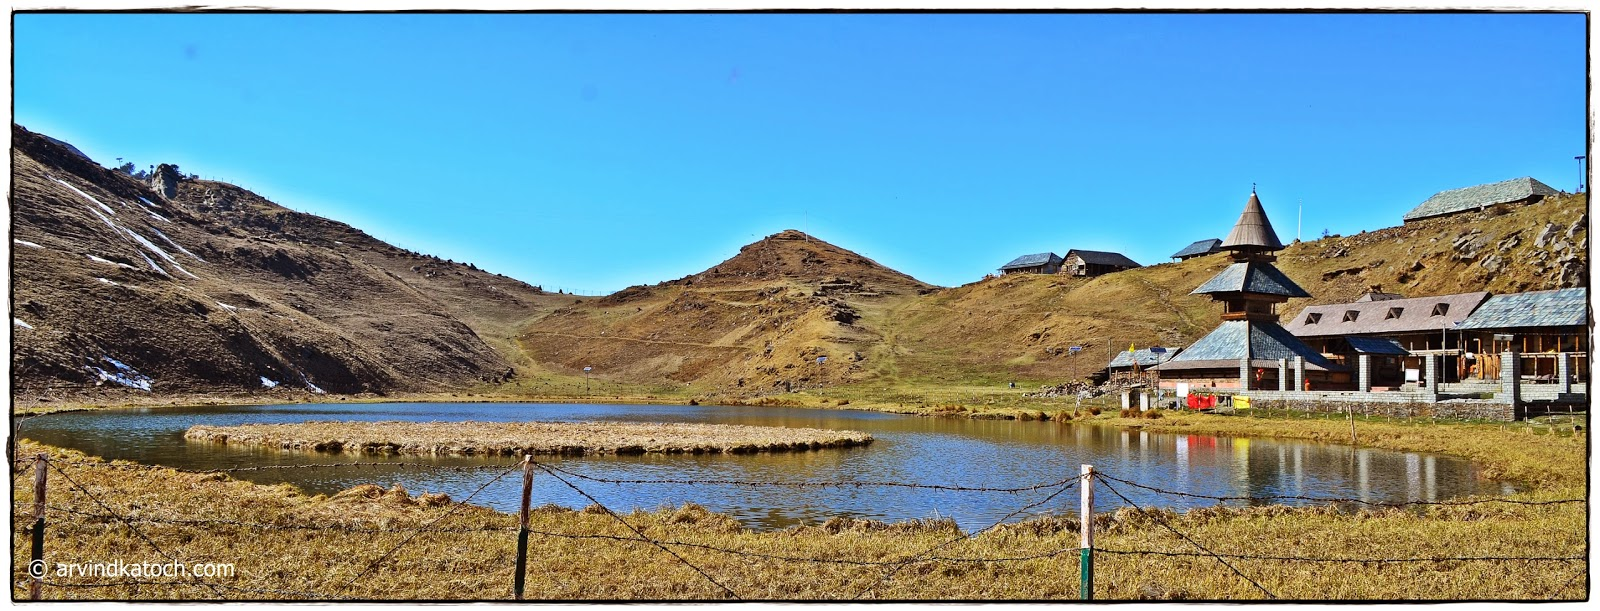 Prashar lake, Mandi, Floating Island, Temple,